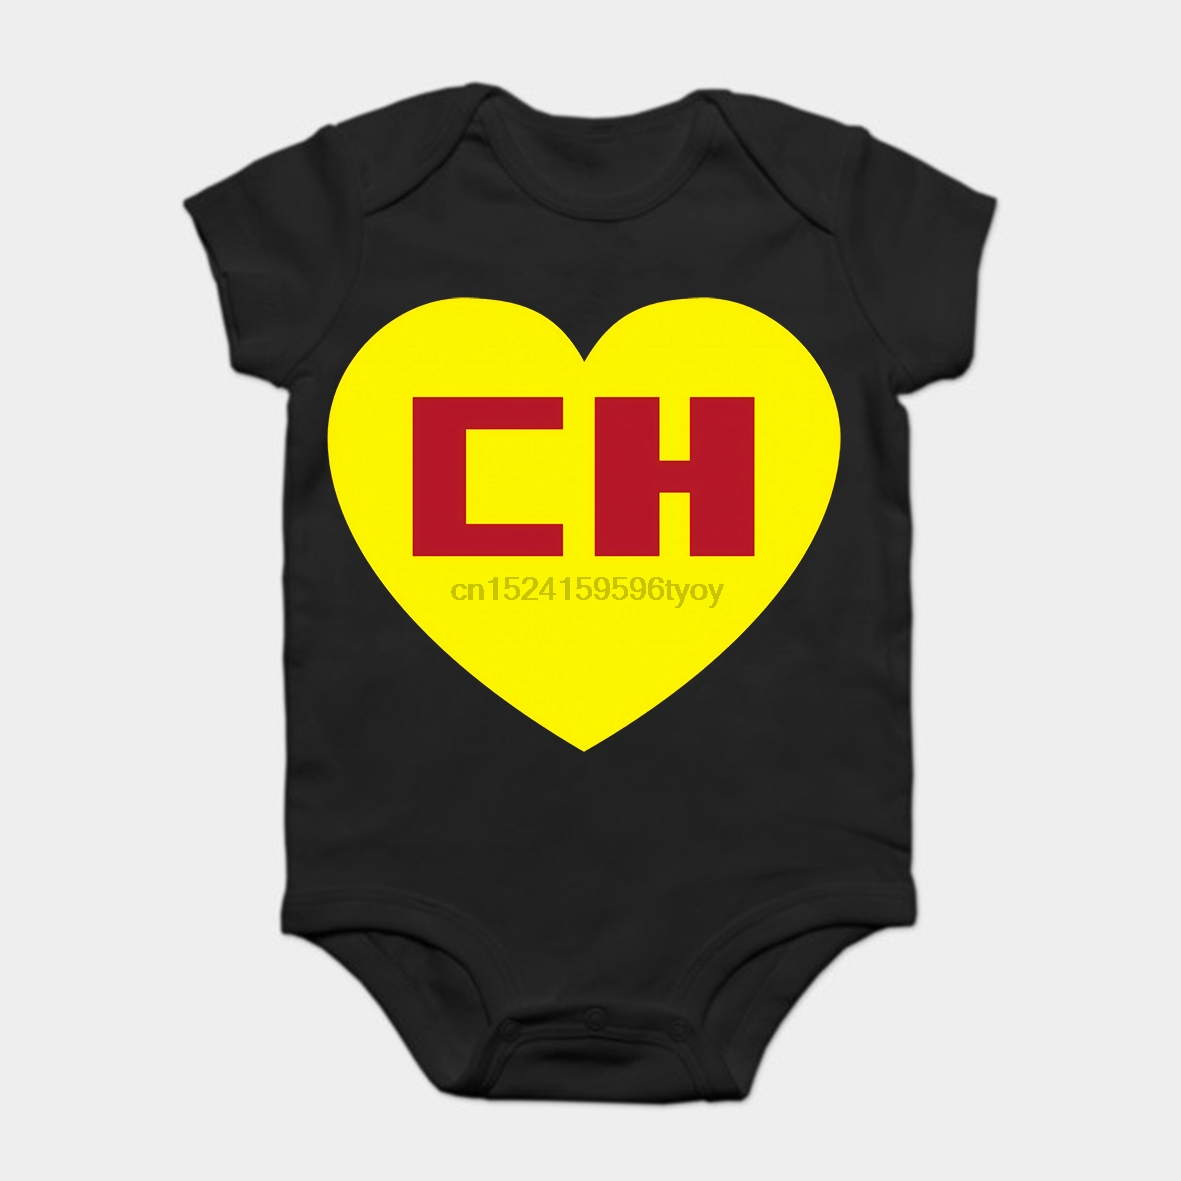 Humorous Baby Onesie Baby Bodysuits Kid T Shirt New El Chapulin Colorado 70s Comedy Tv Series T Shirt High Quality And Low Overhead